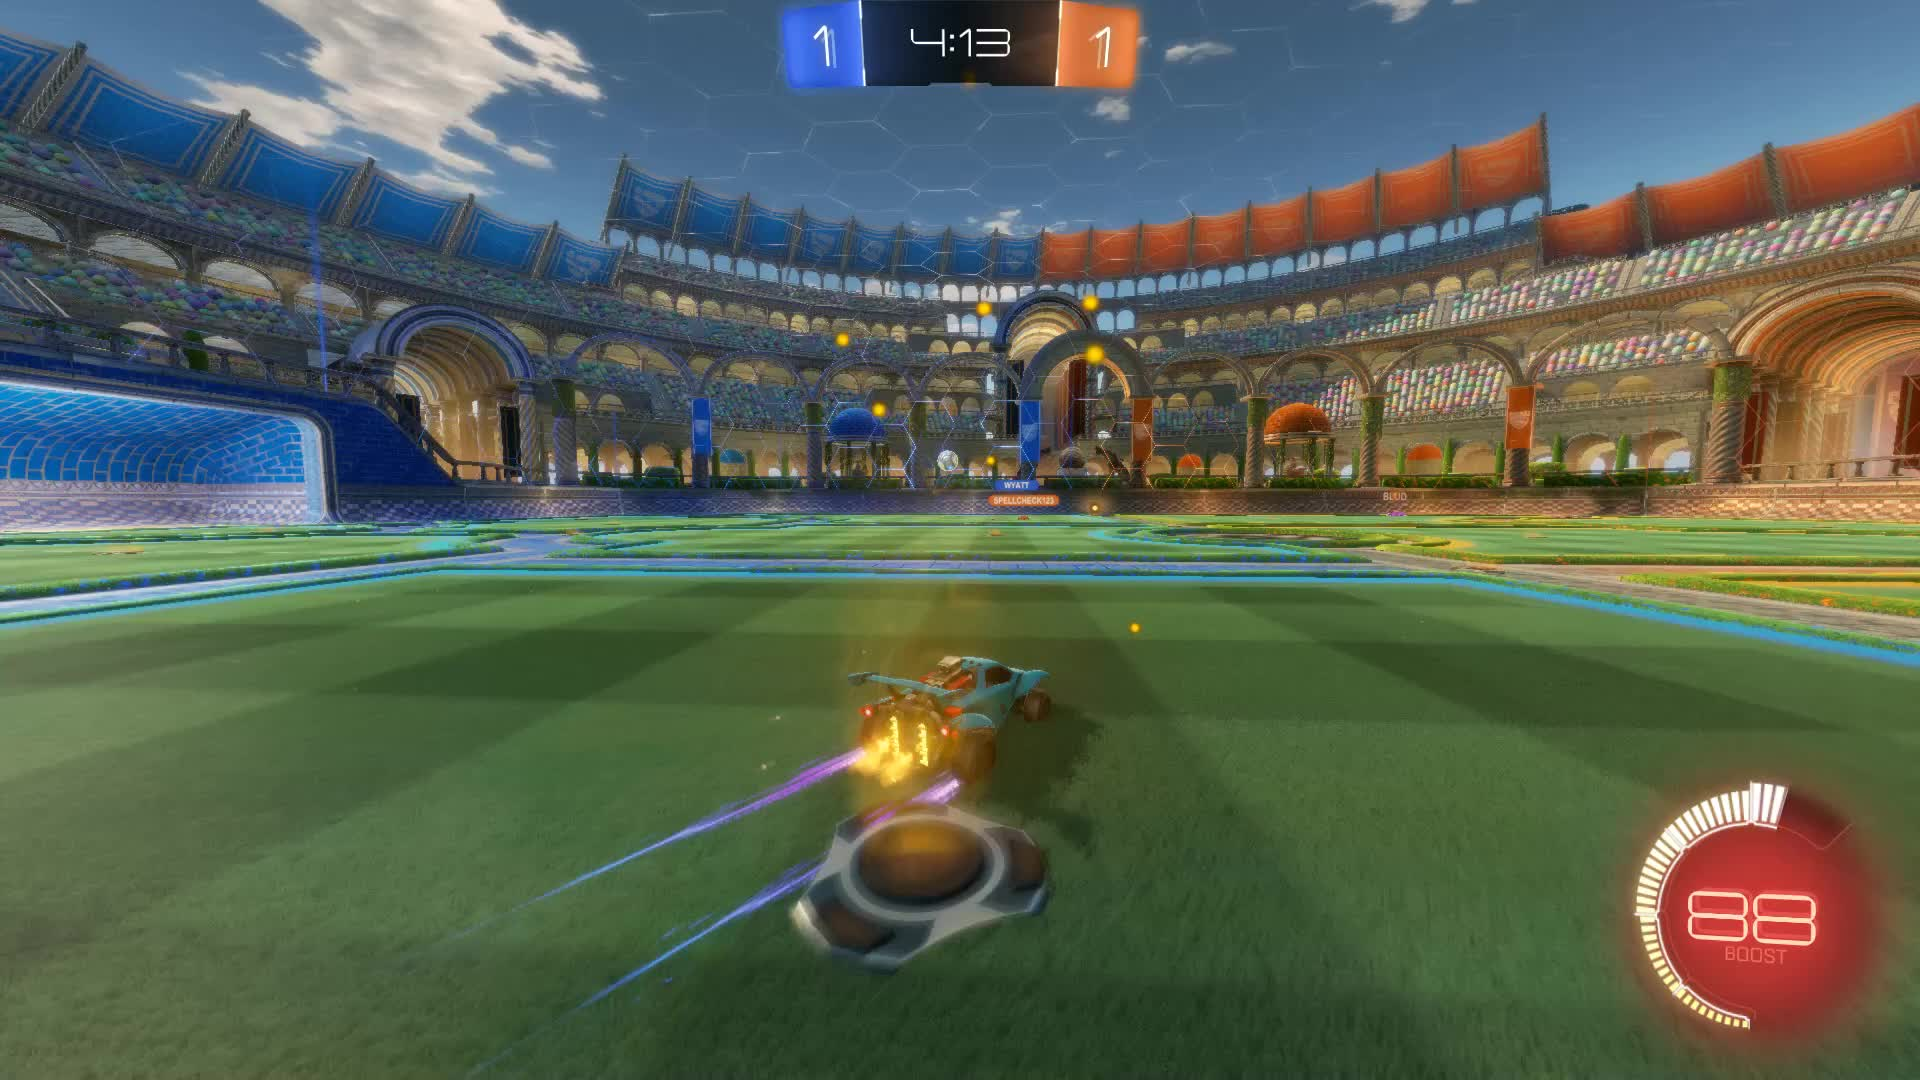 Gif Your Game, GifYourGame, Nyhx, Rocket League, RocketLeague, Nyhx Clip 1 GIFs